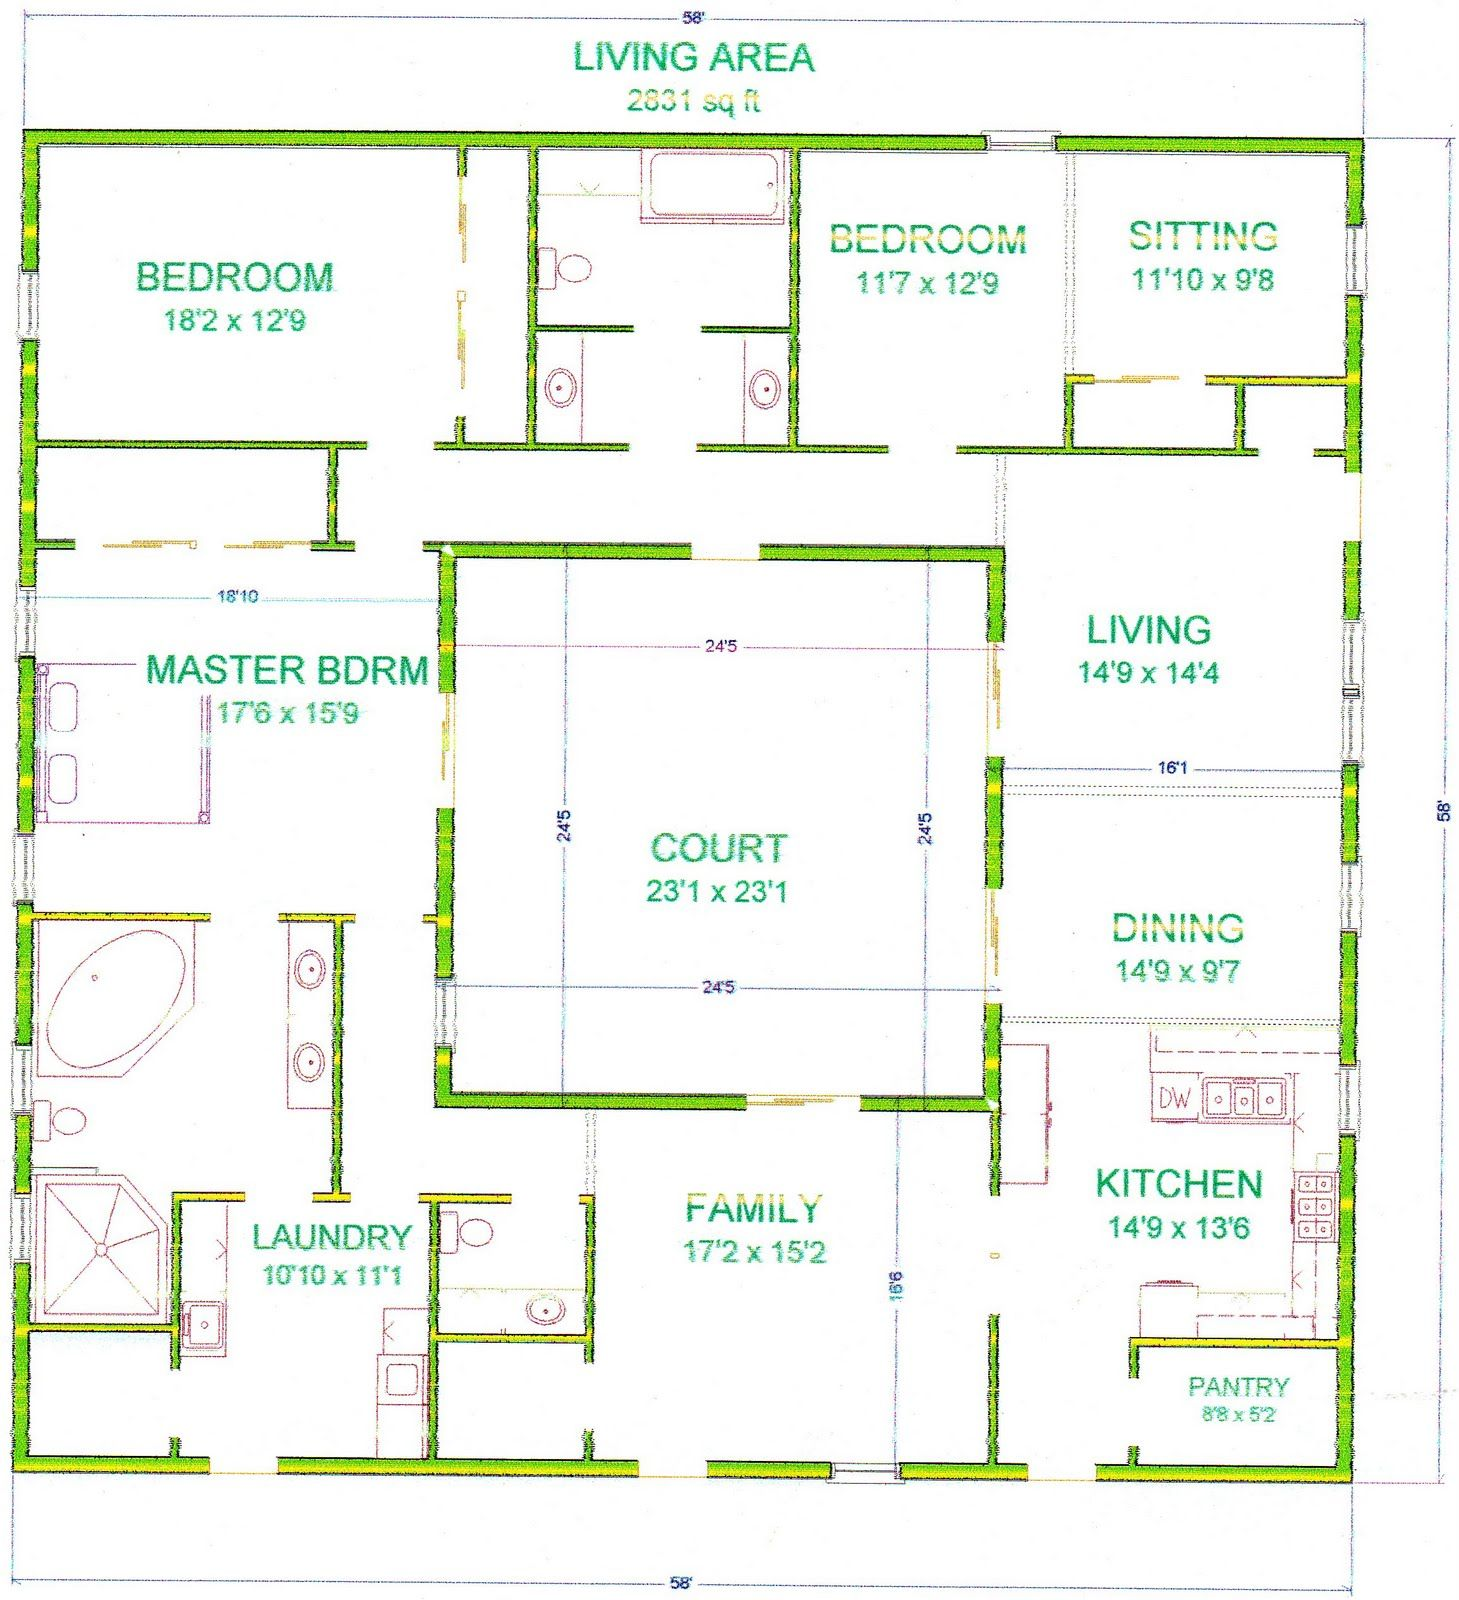 Center courtyard house plans with 2831 square feet this for Courtyard house plans